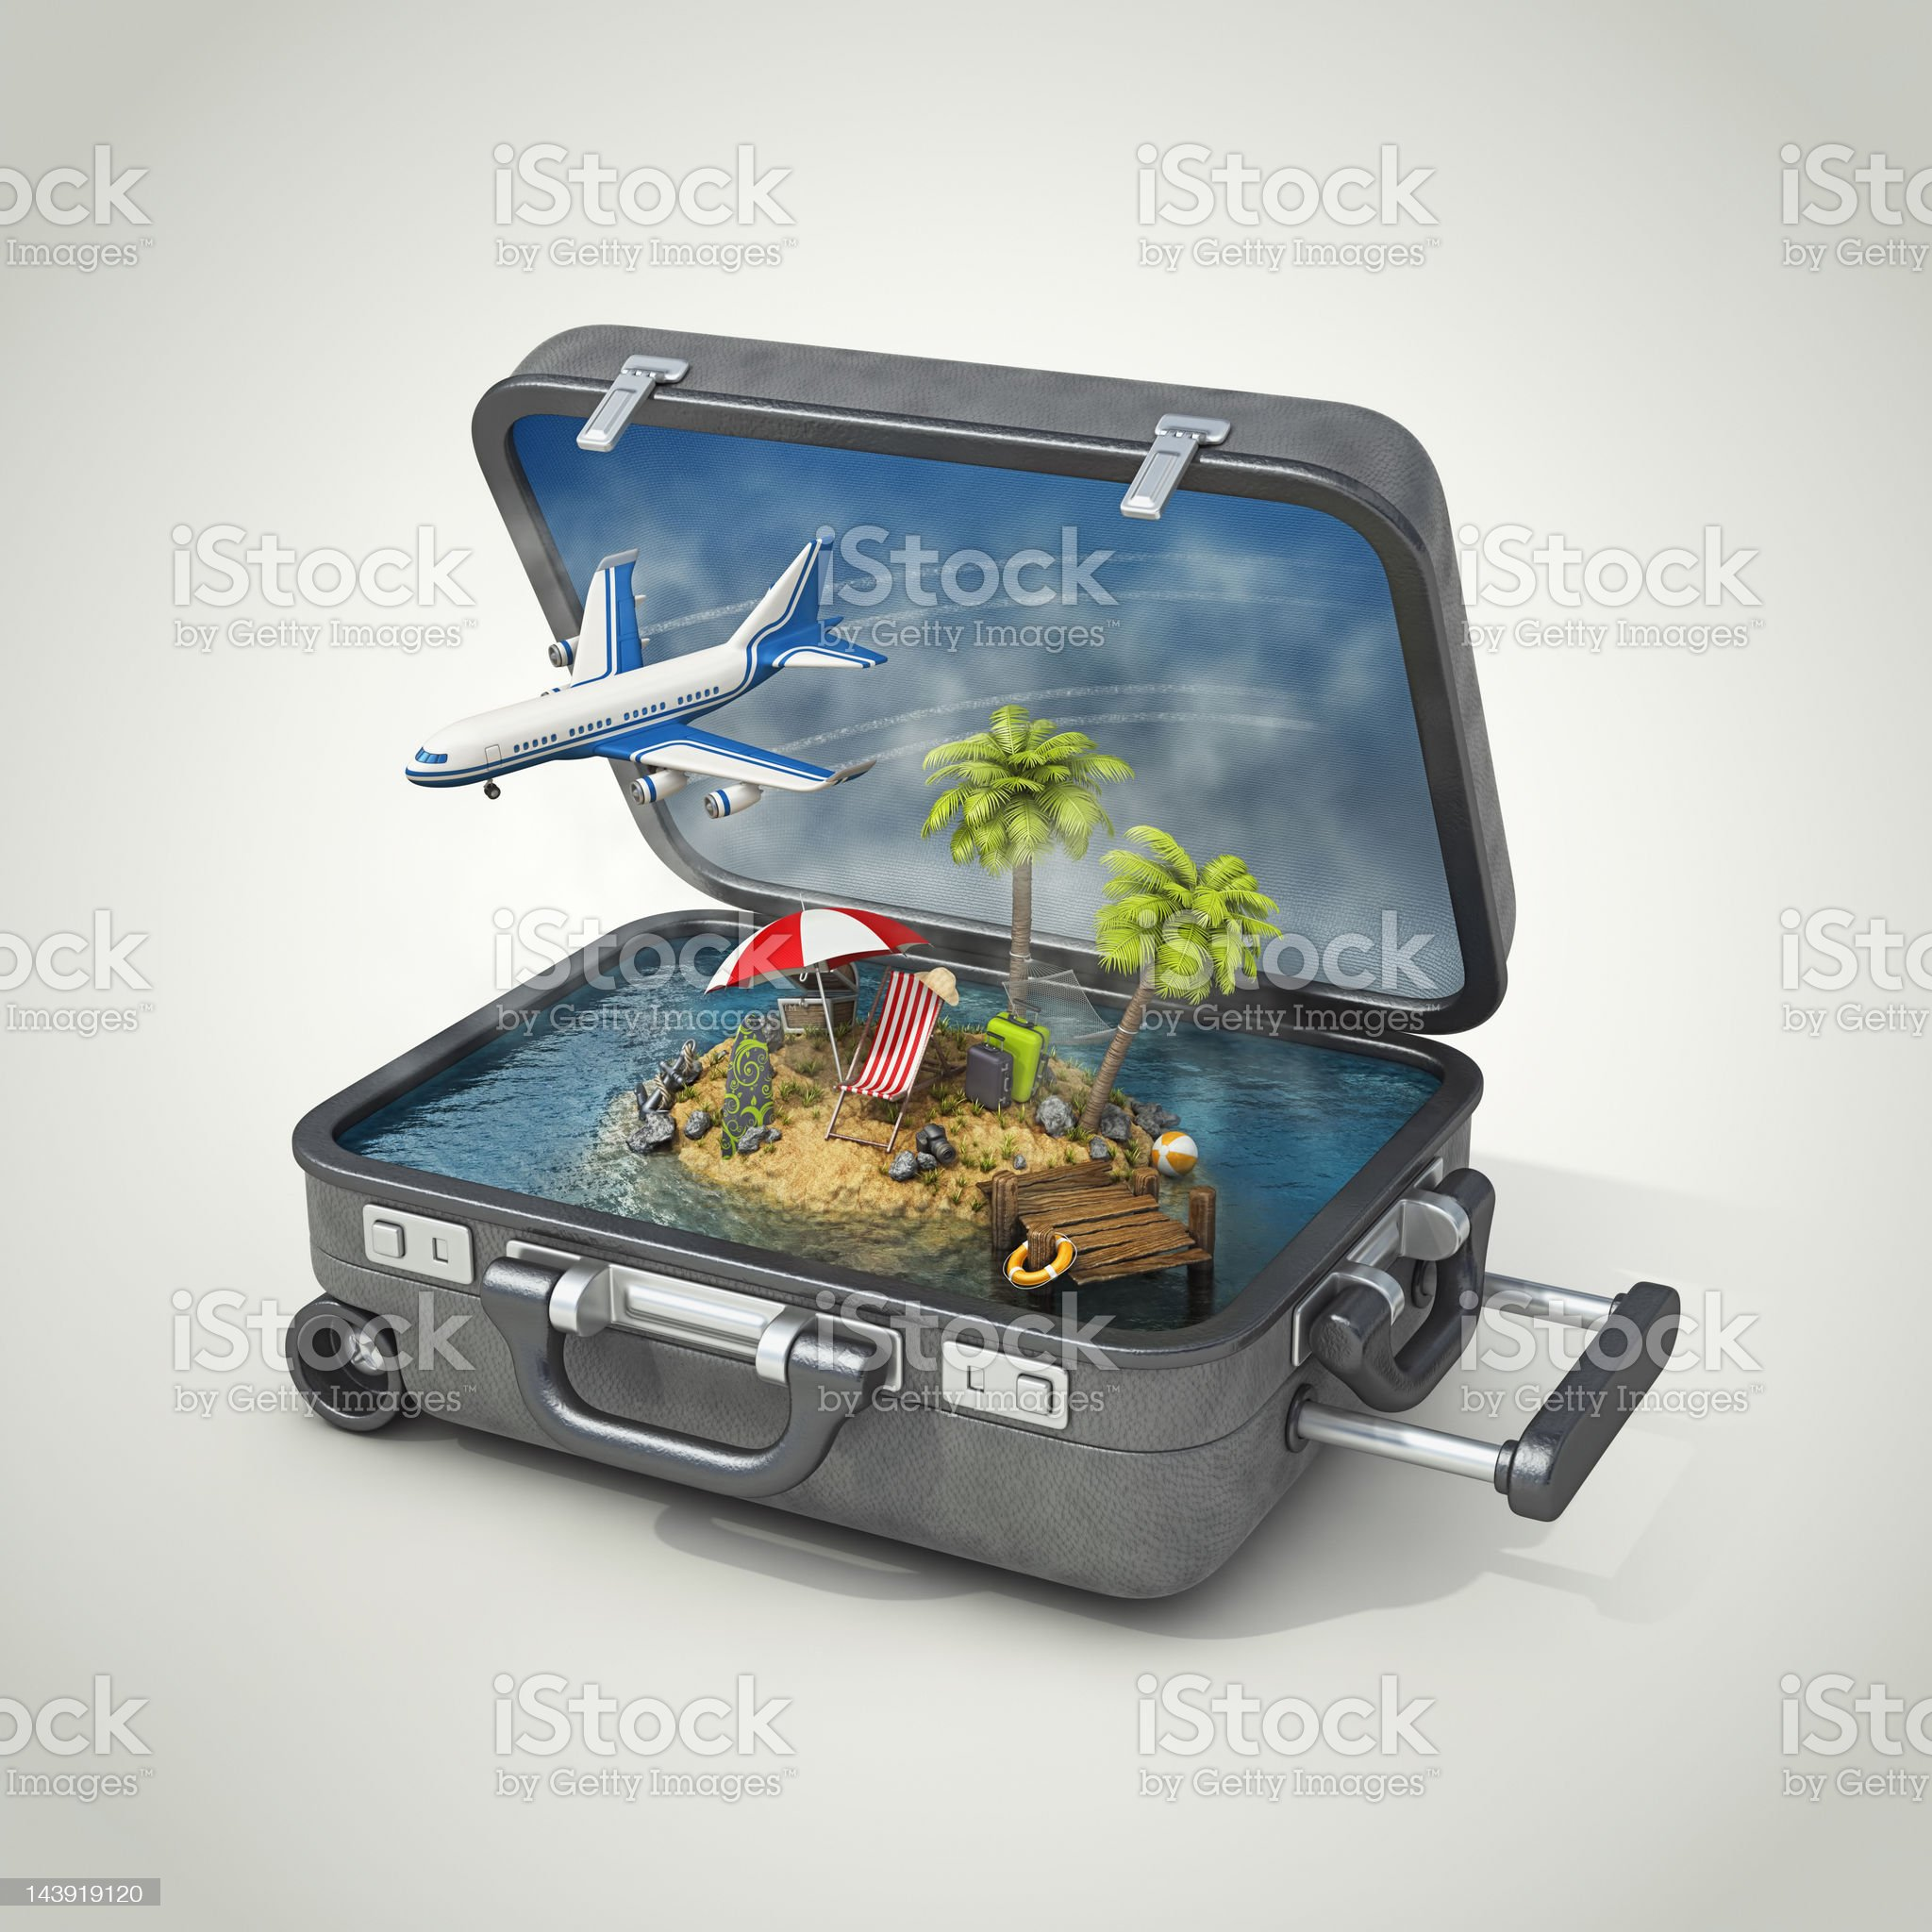 vacation island in suitcase royalty-free stock vector art